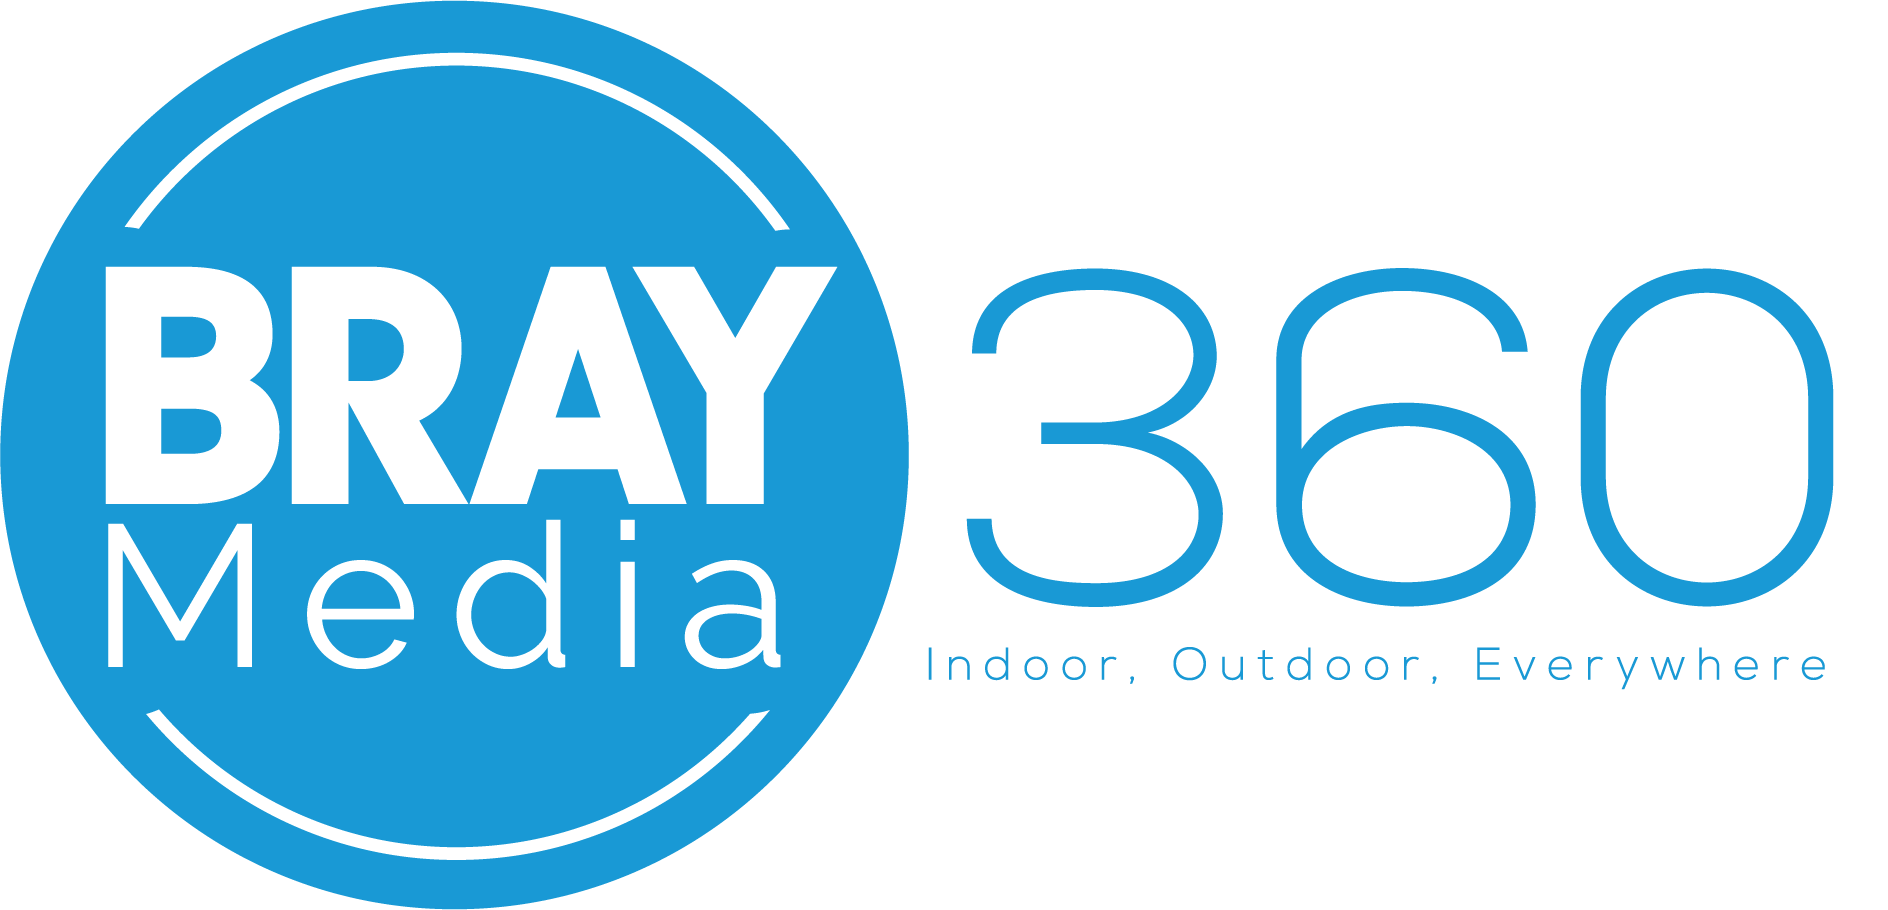 Bray Media 360 - Advertising & Media Indoor, Outdoor & Everywhere